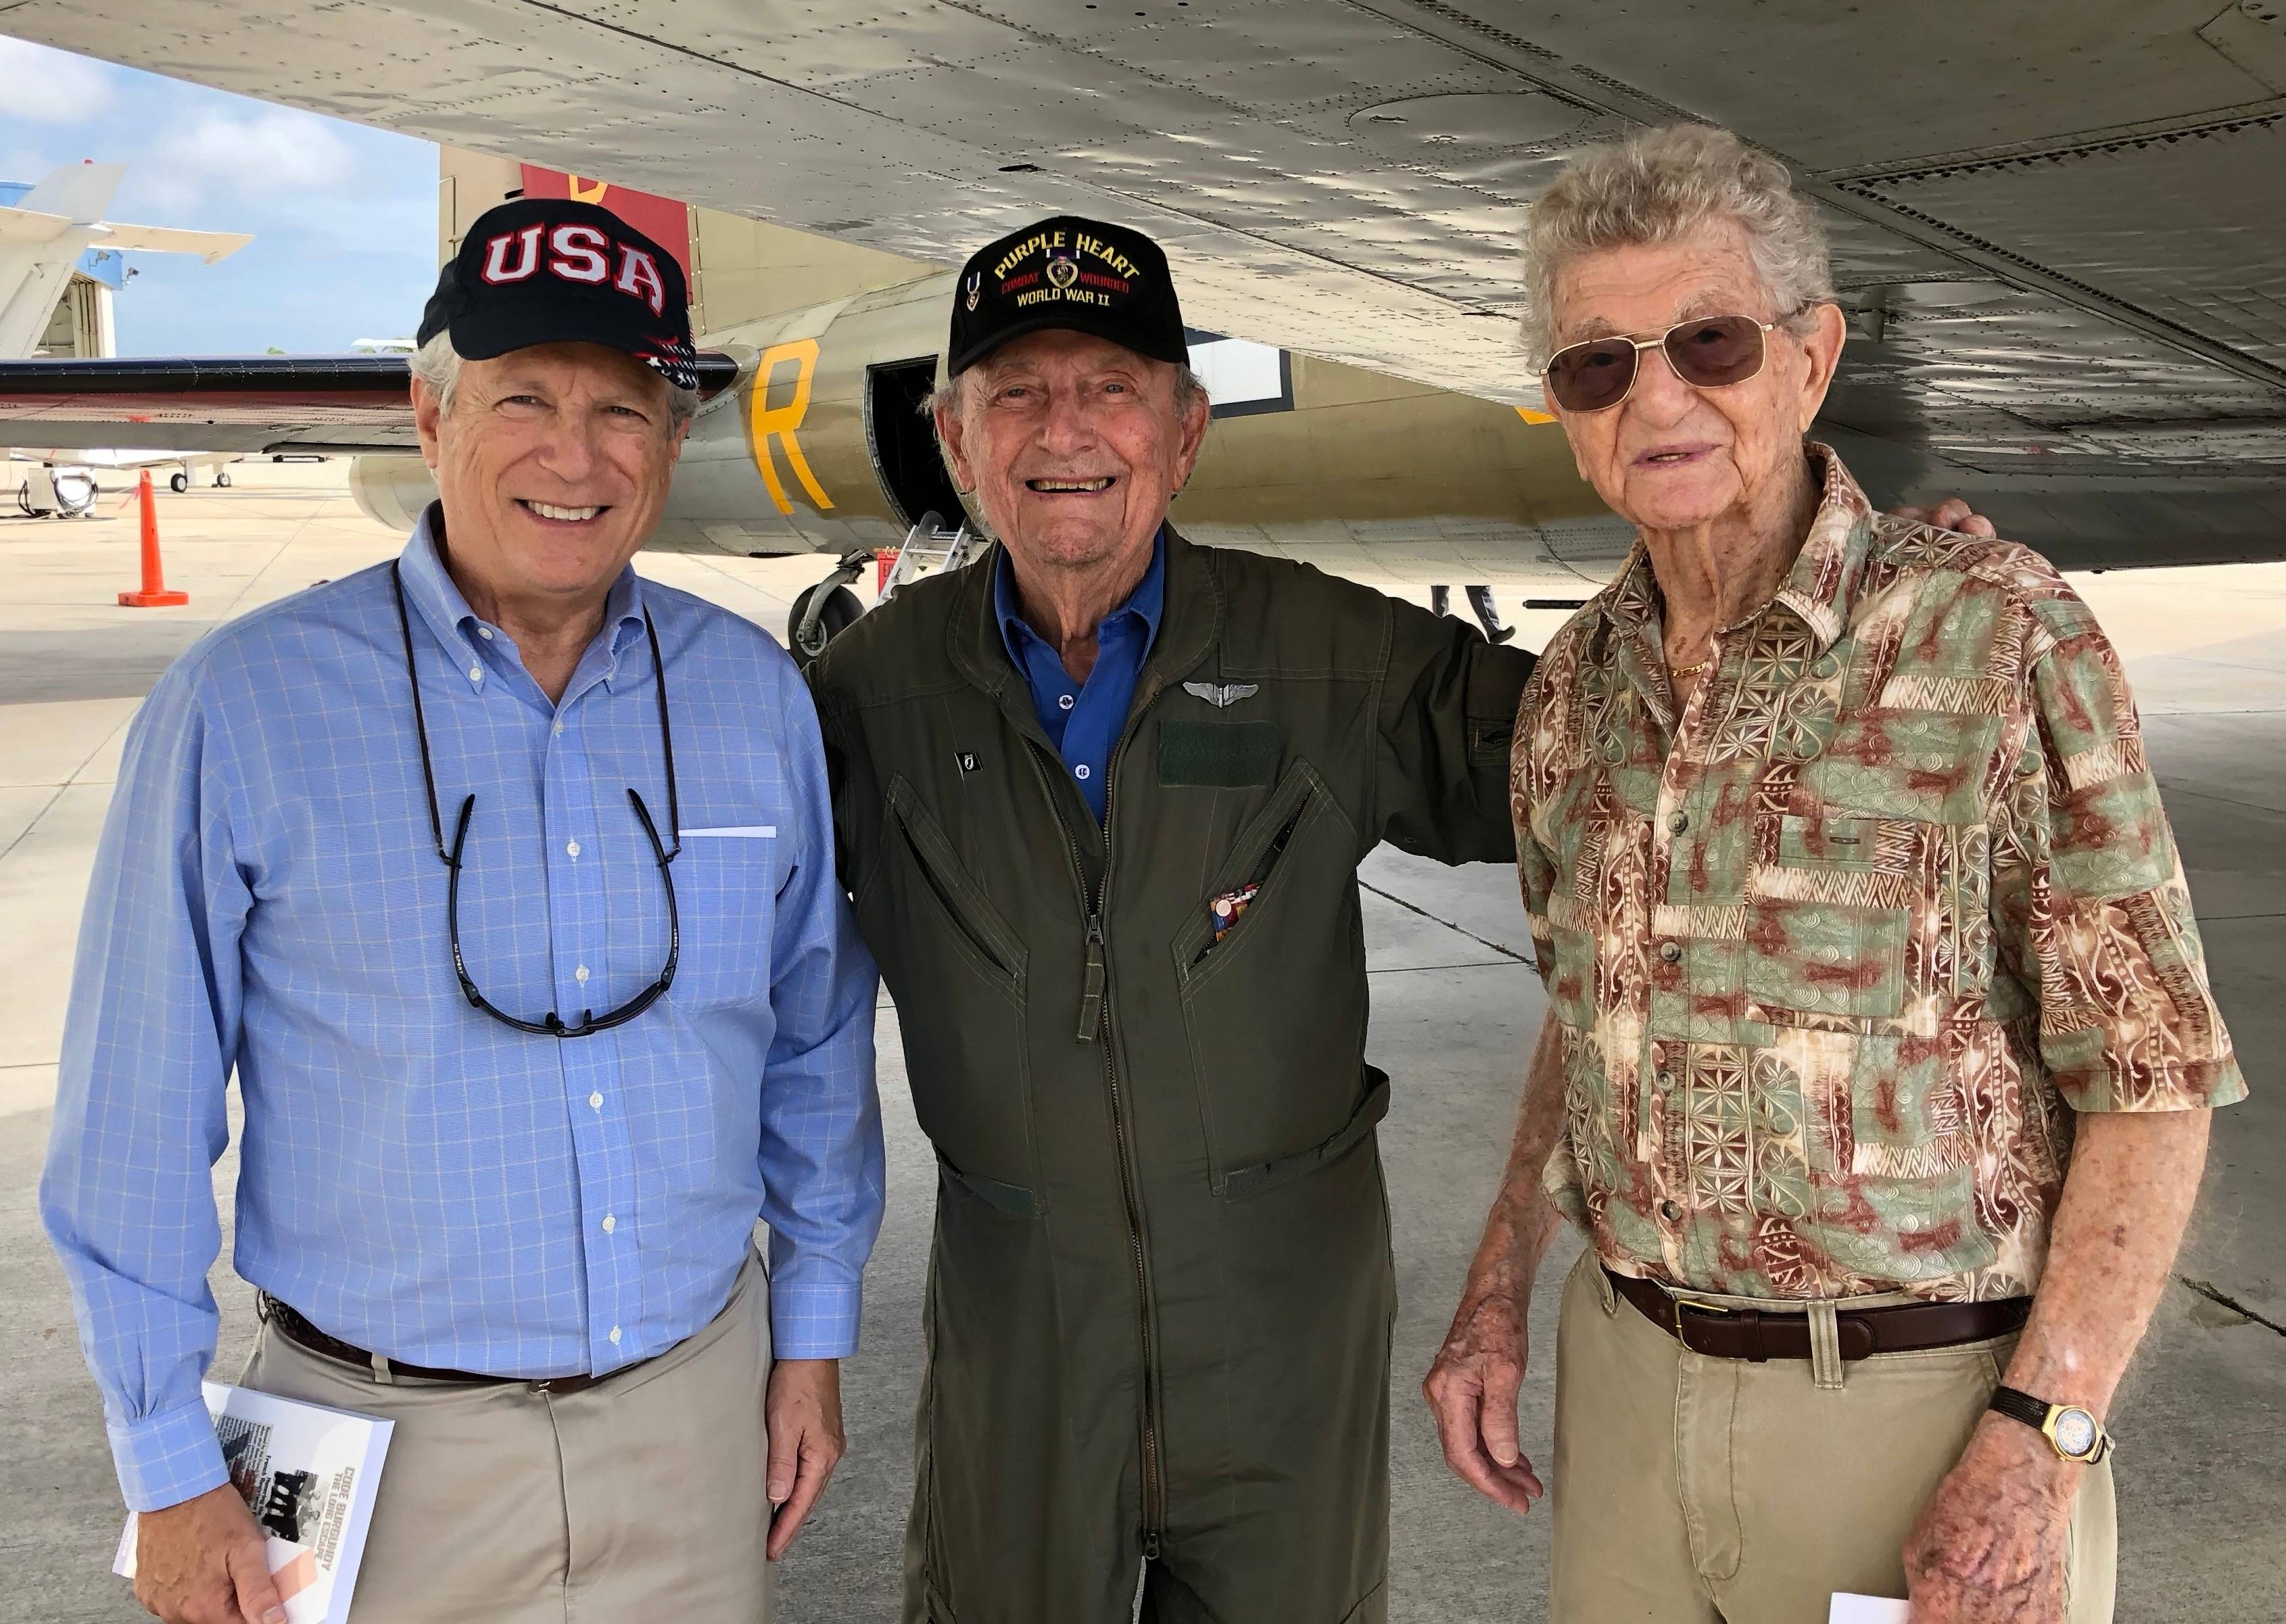 Filmmaker and 2 veterans of WWII